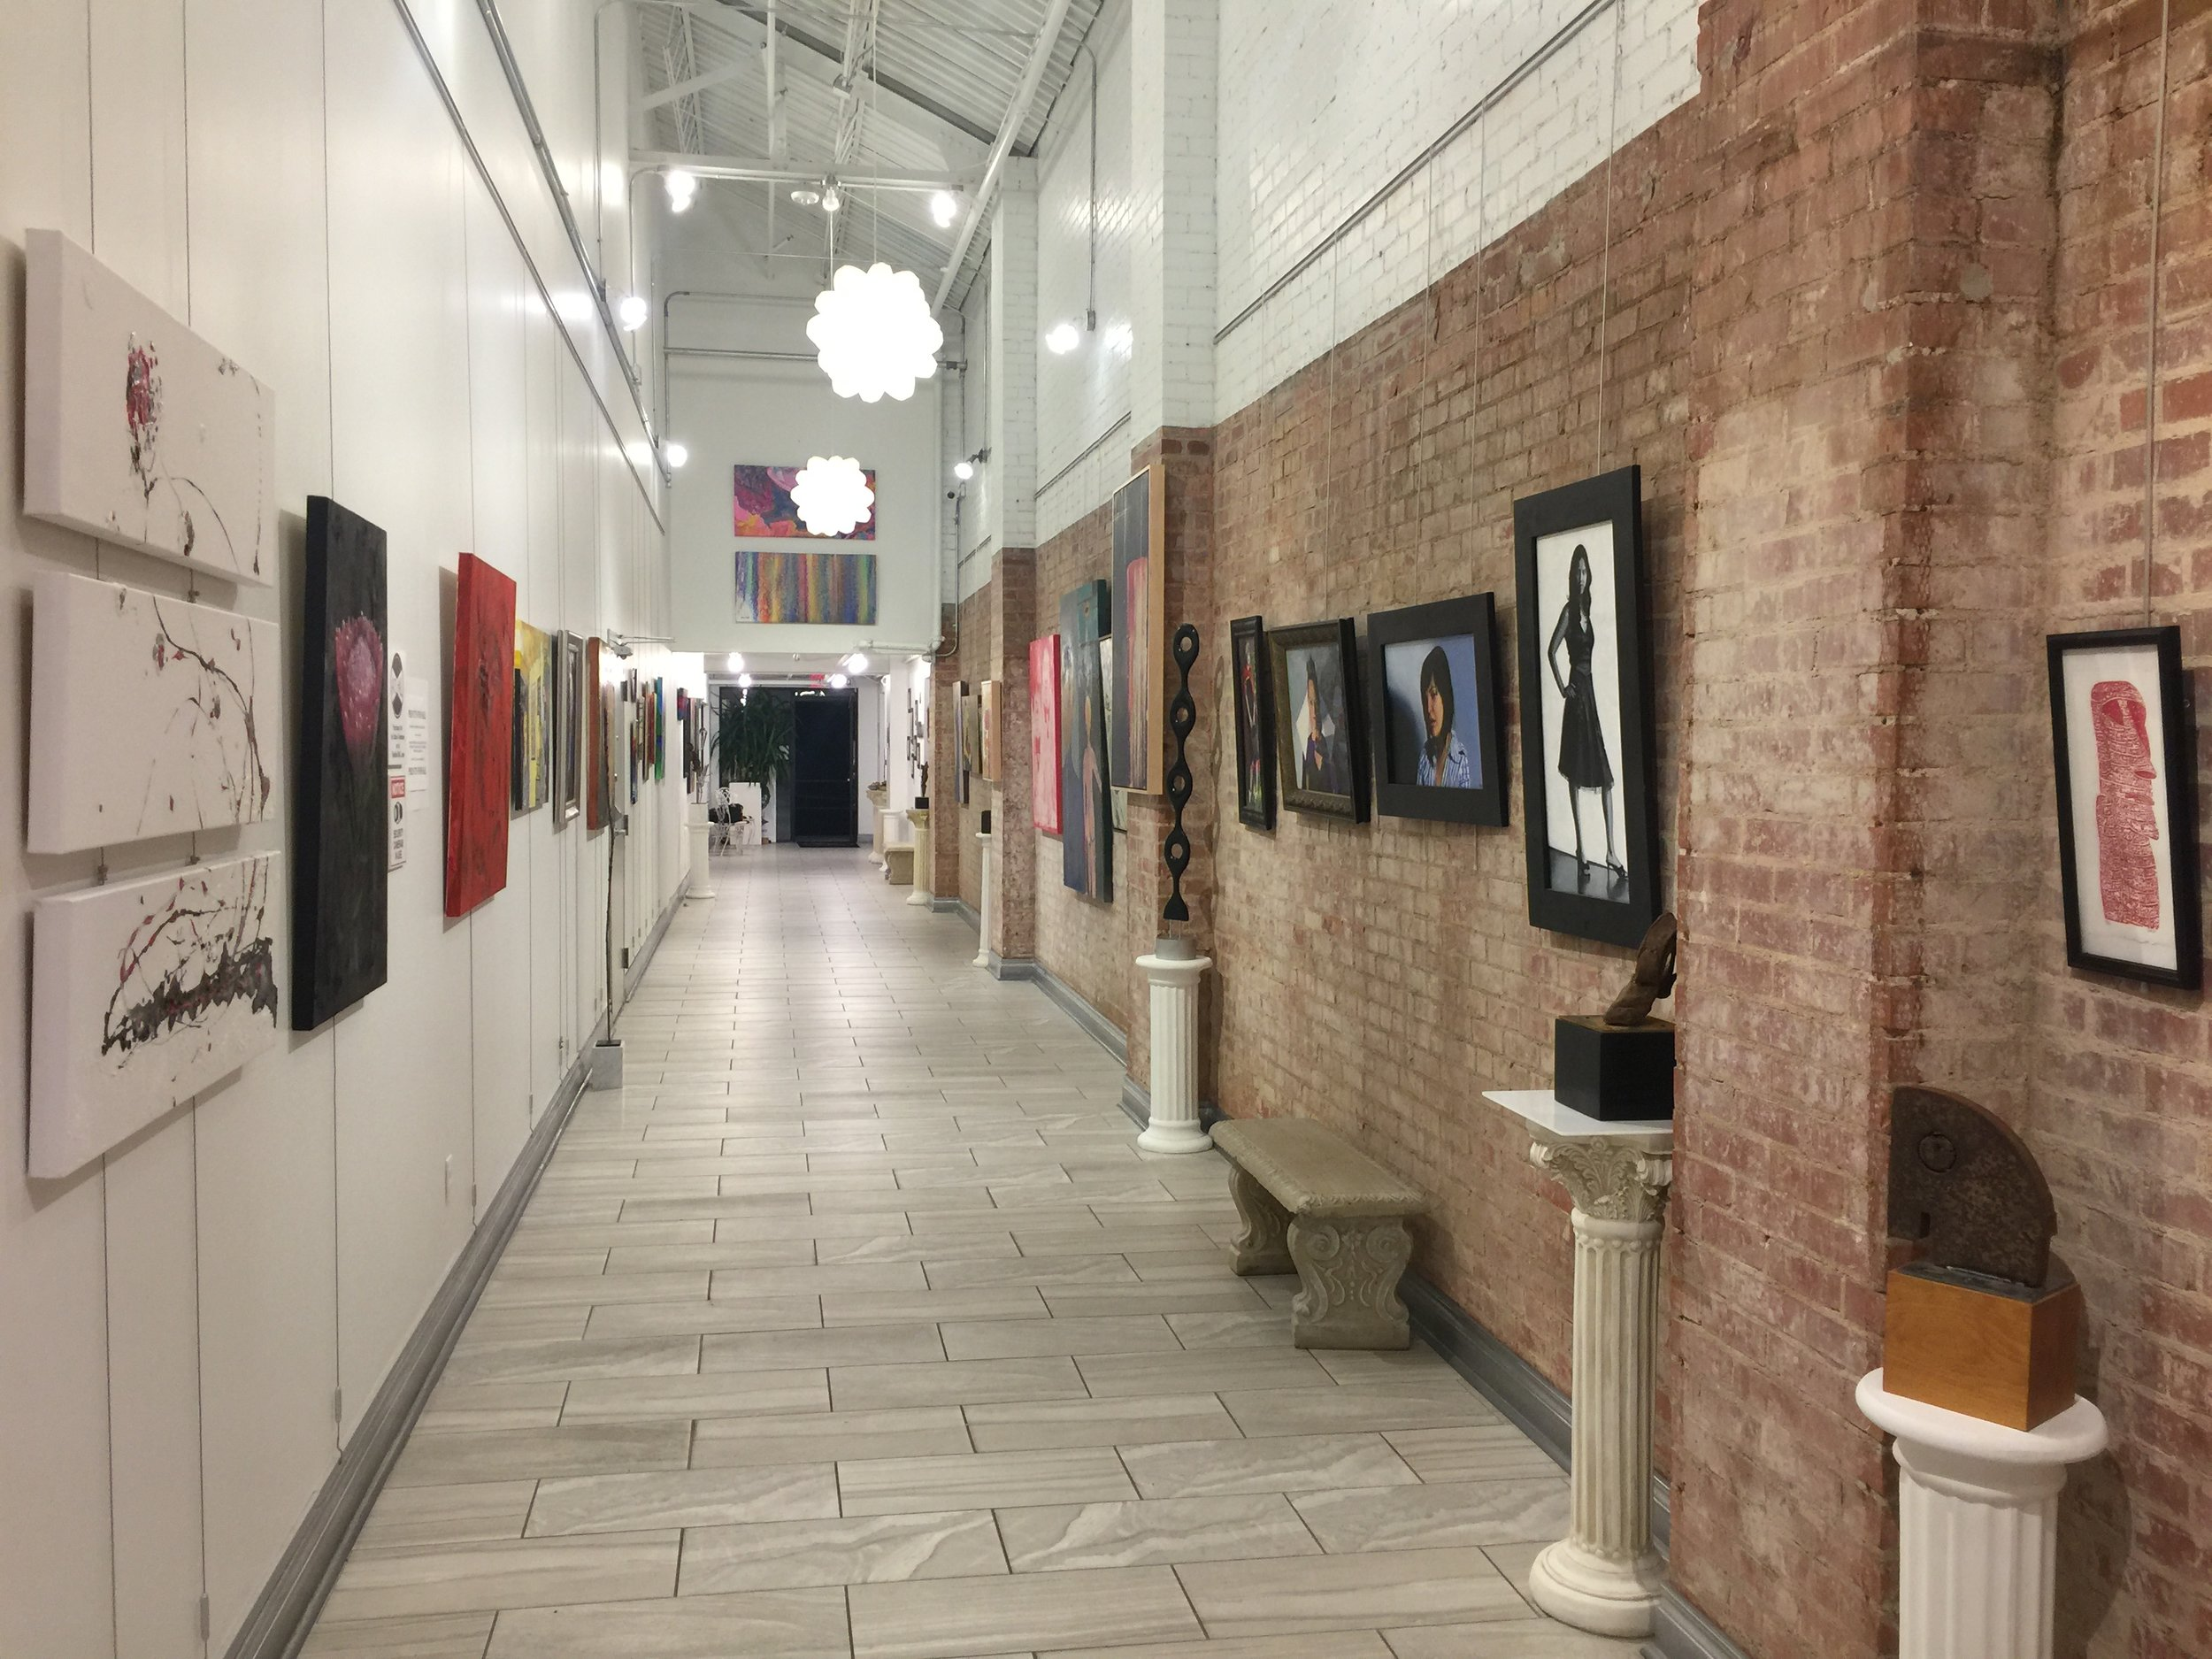 Hodge Podge Exhibition, facing North and showing the East wall.